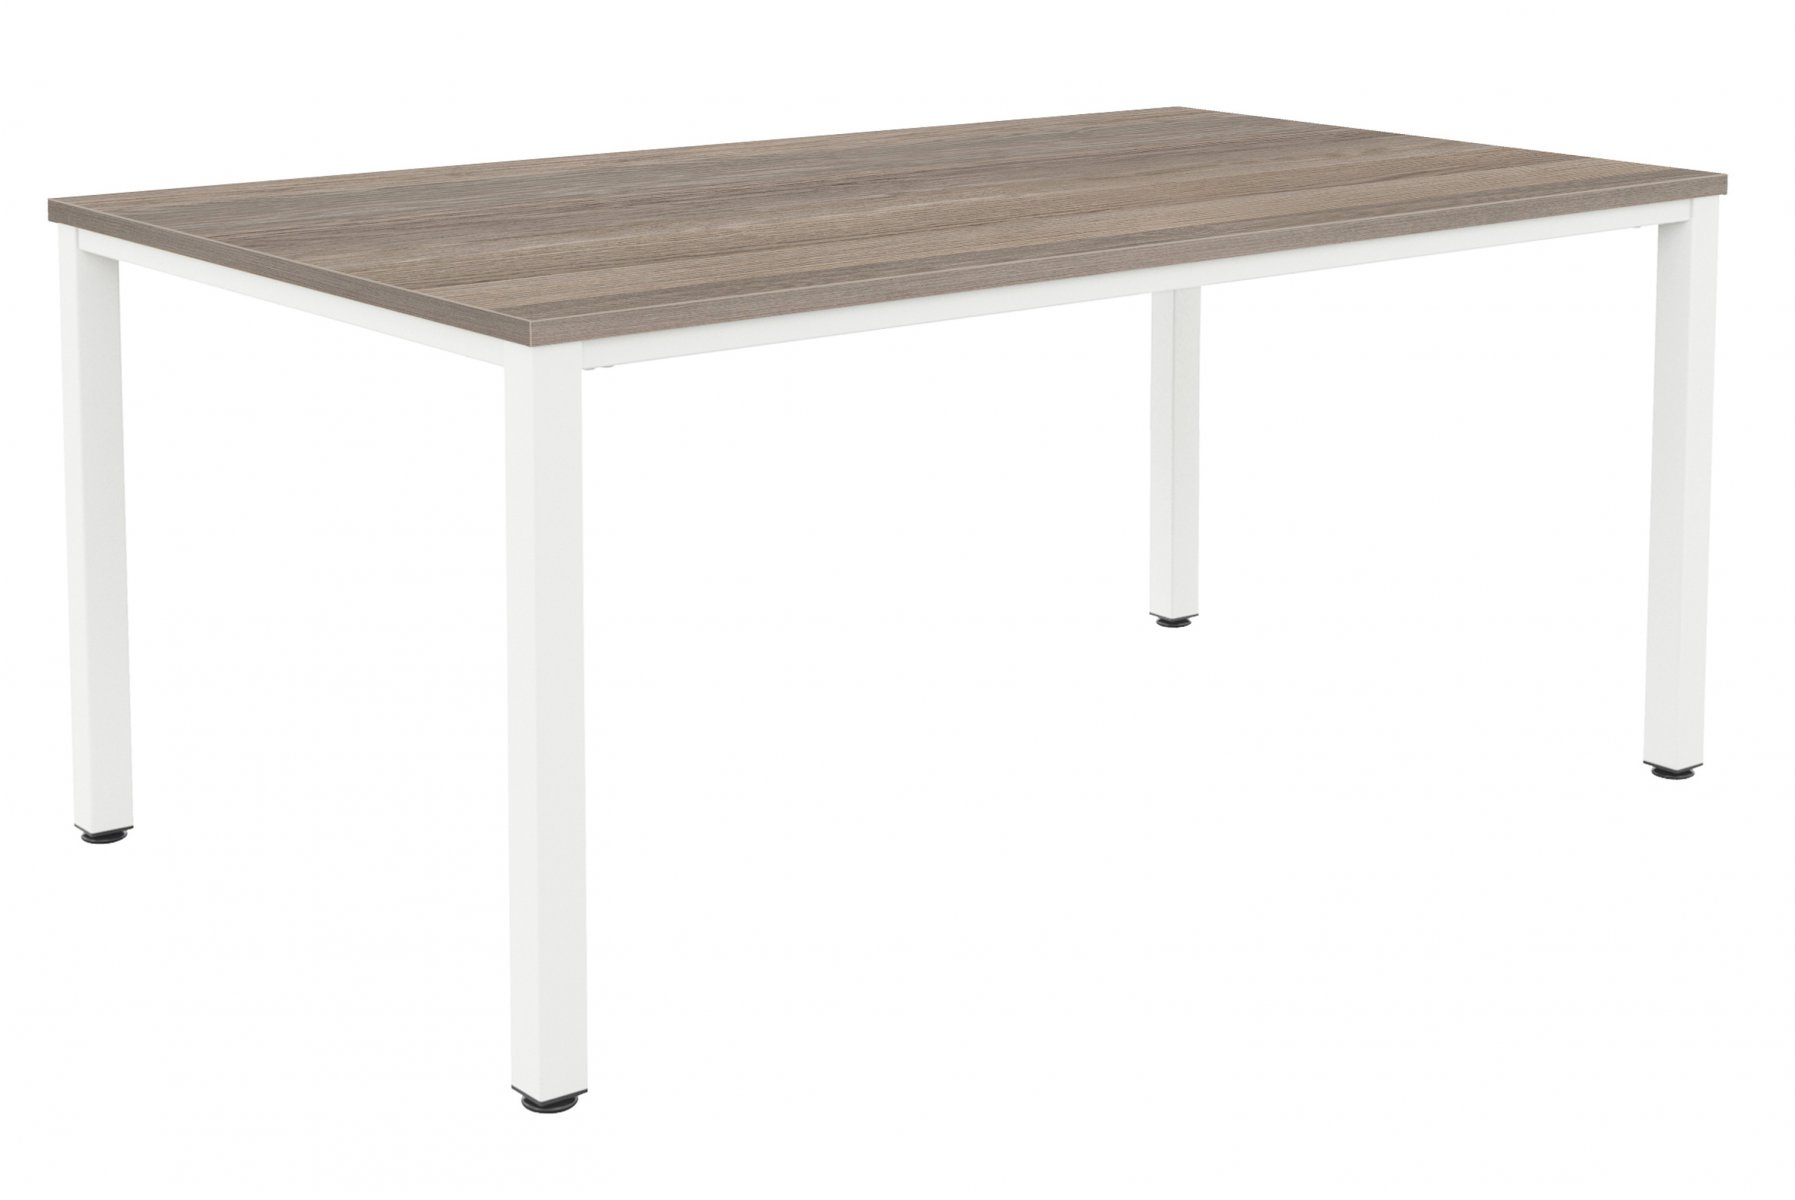 Fraction Infinity 200 x 100 Meeting Table - Grey Oak with White Legs